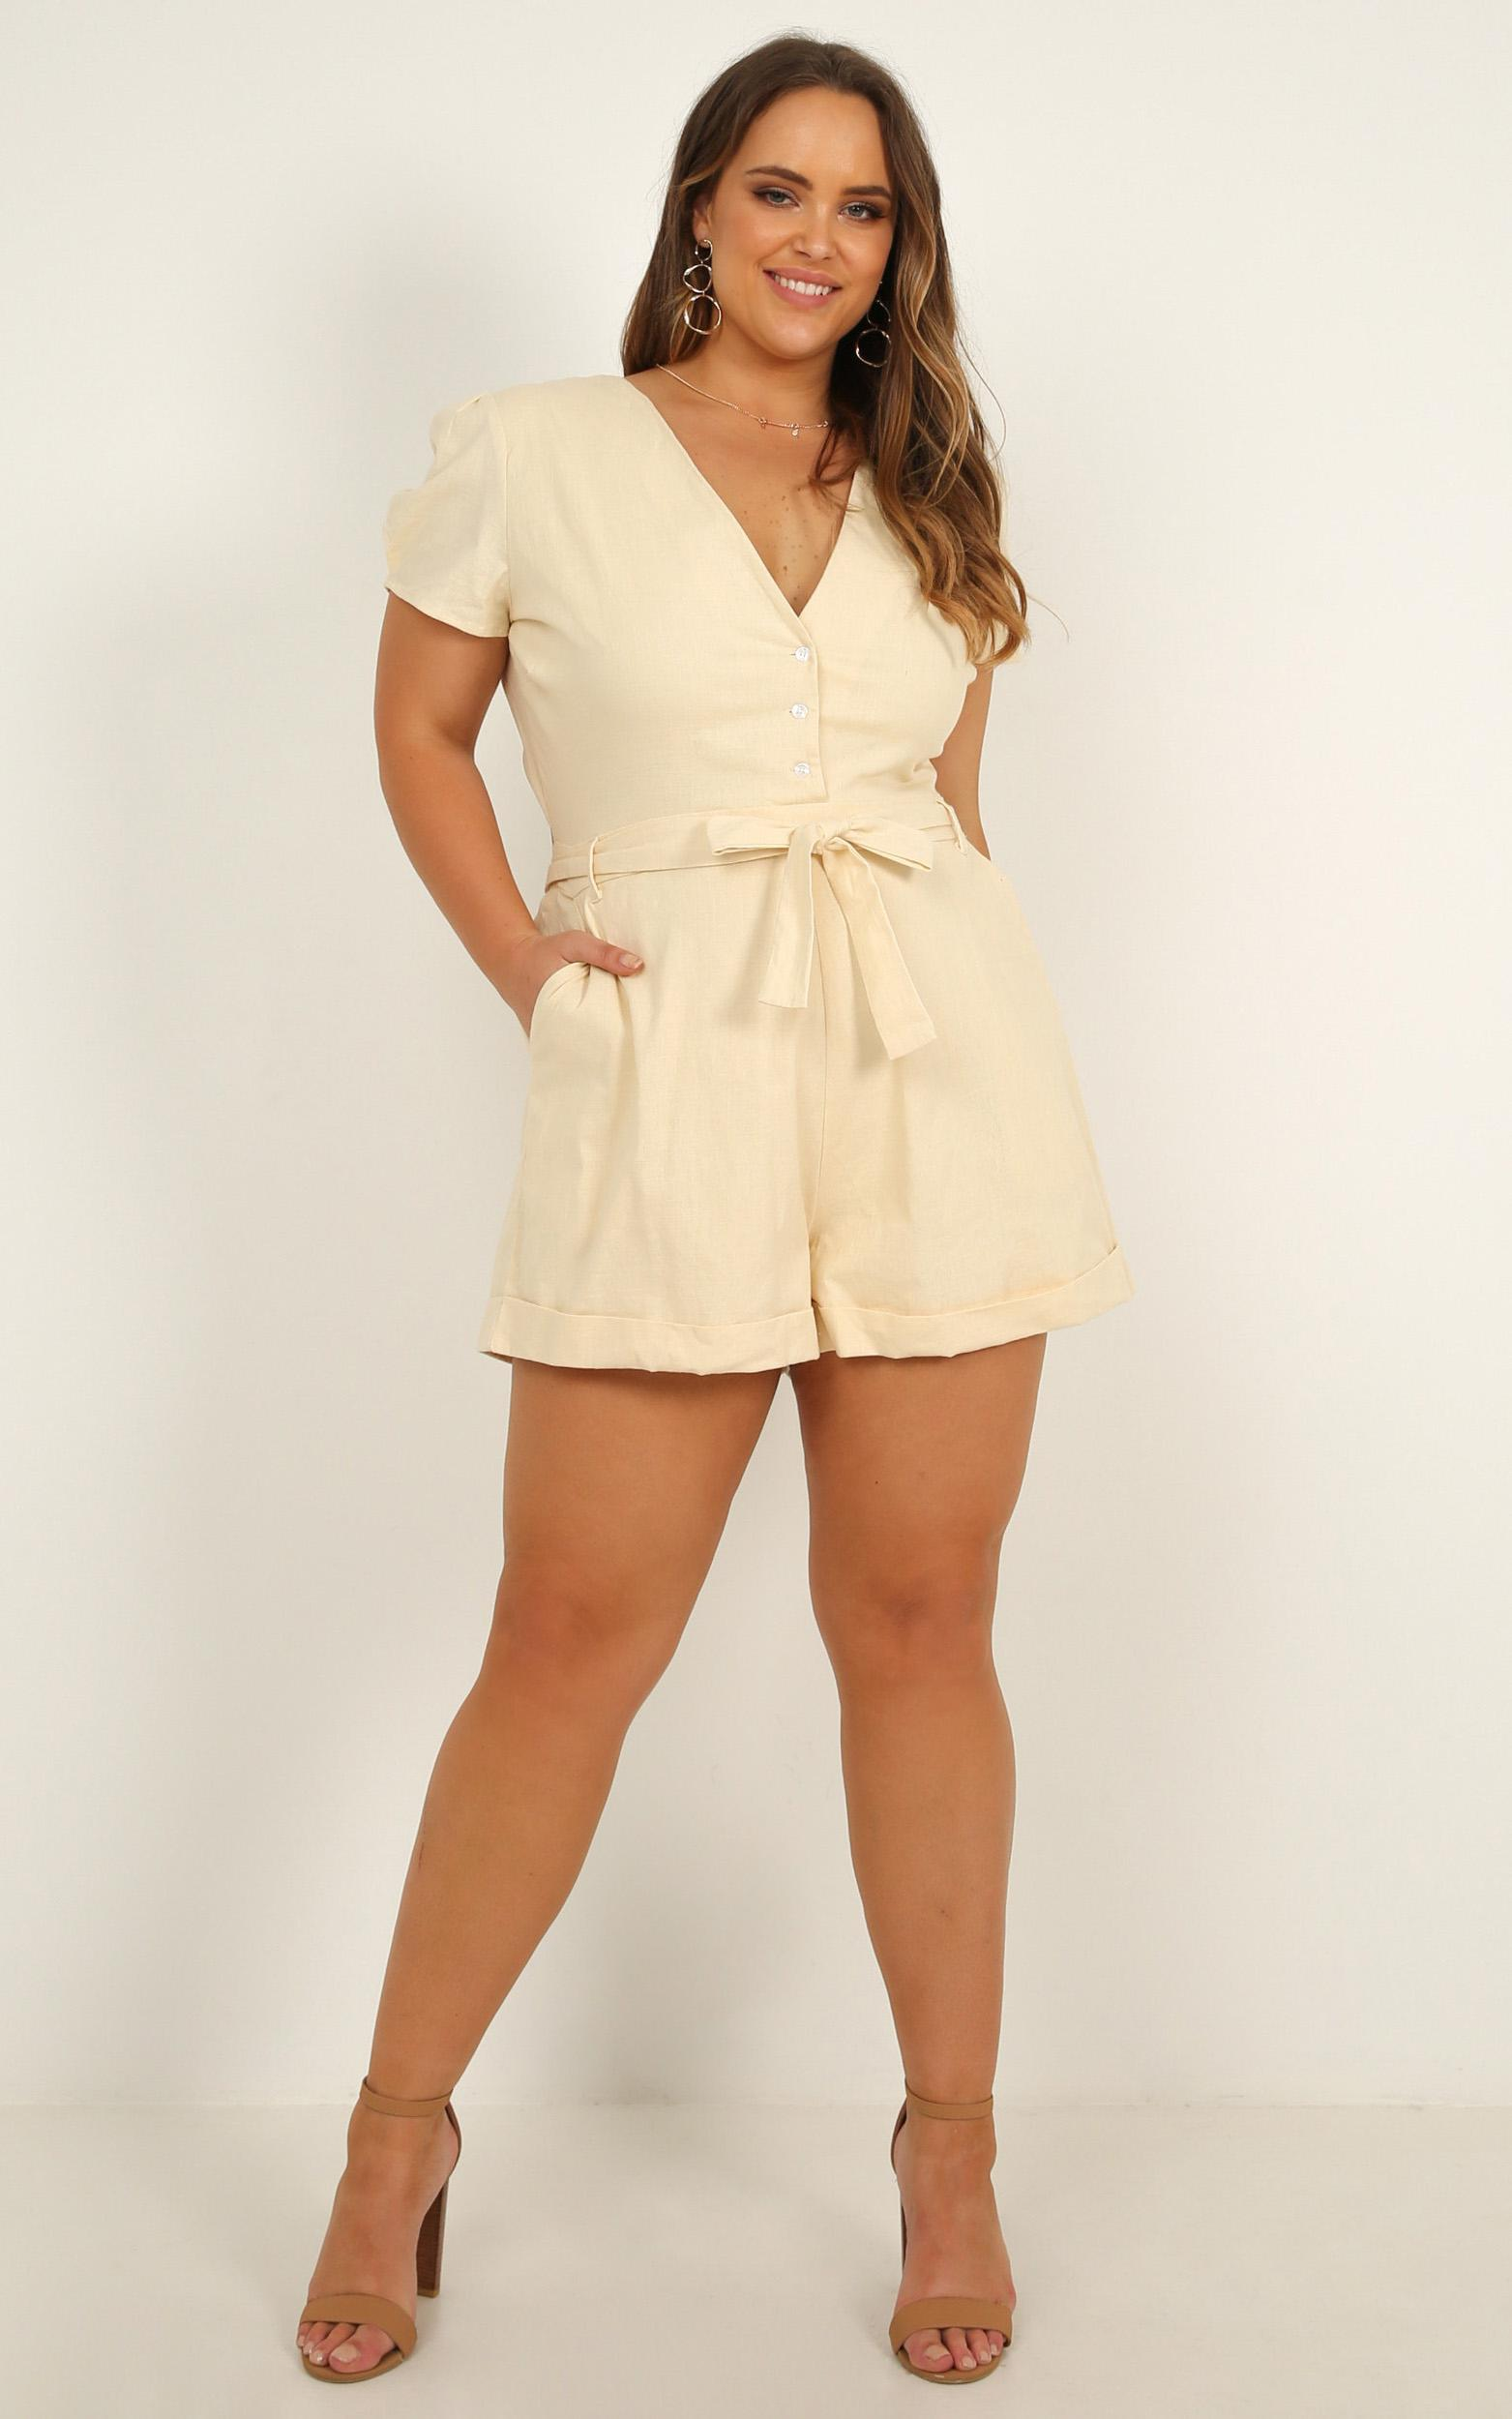 Sundaze playsuit in cream - 20 (XXXXL), Cream, hi-res image number null